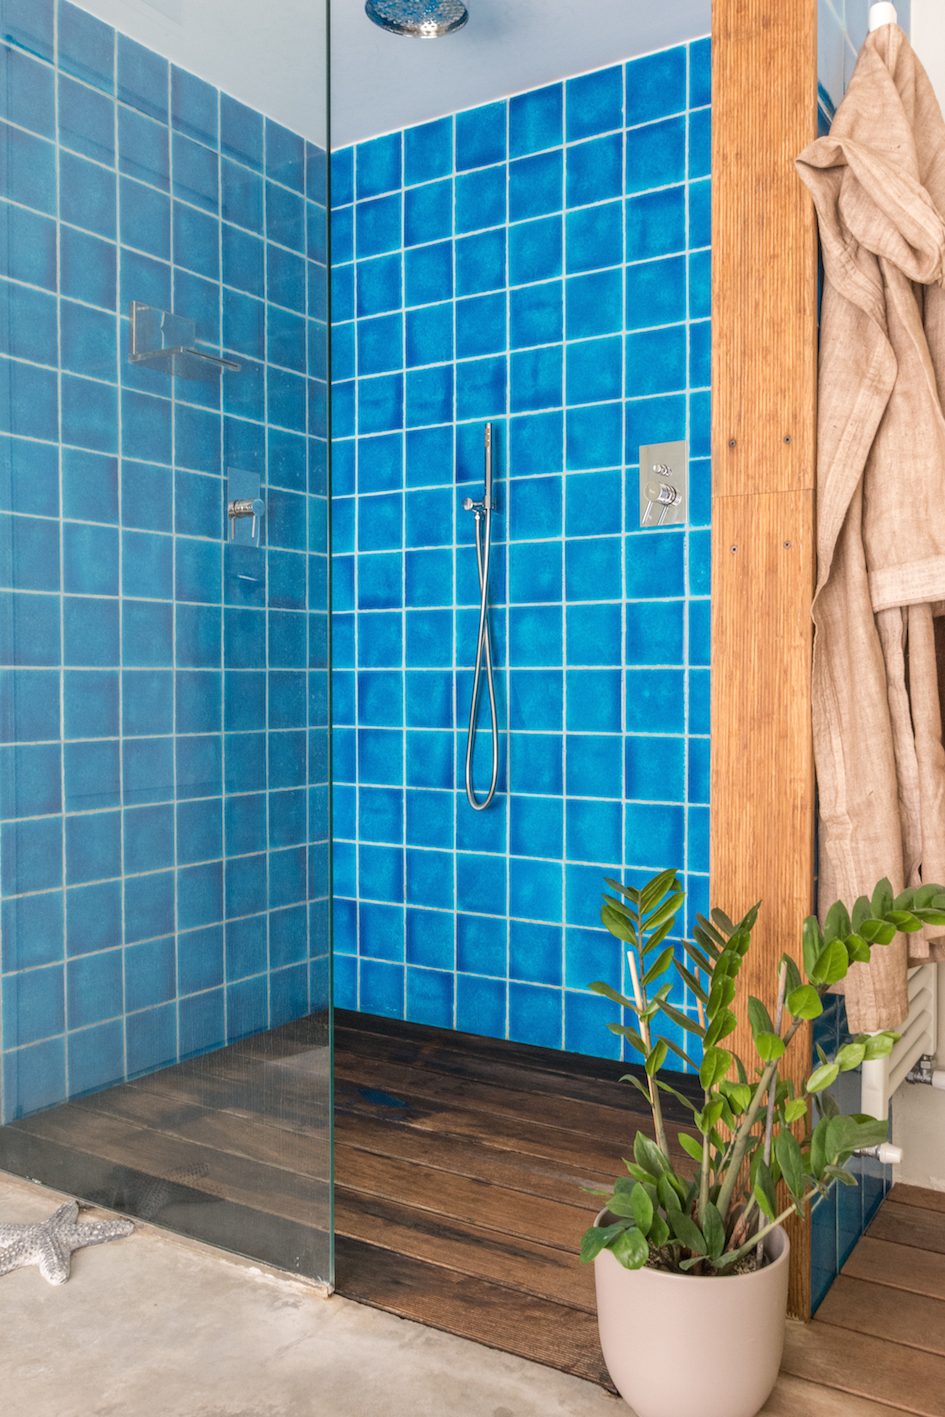 bagno bathroom doccia shower blu blue wood interiors decor homestaging mirna casadei interiors real estate home vendo casa annunci immobiliare-8346.jpg